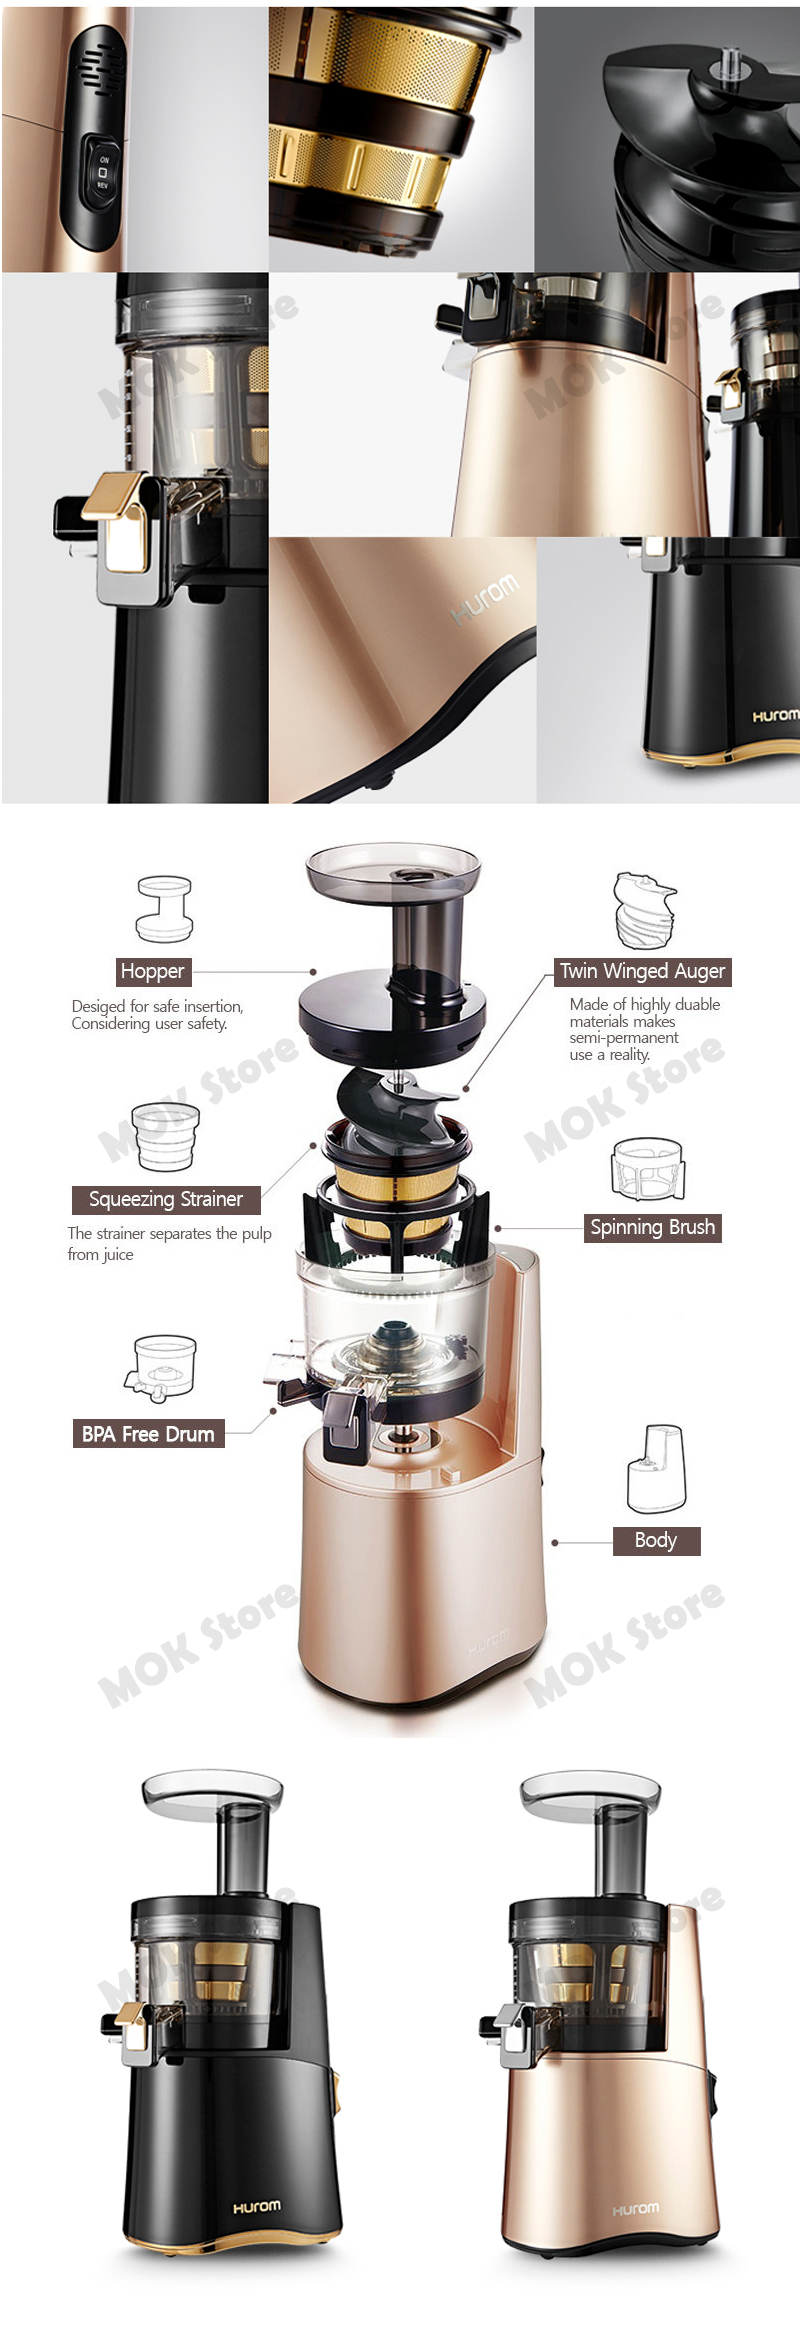 Domoclip Premium Slow Juicer : Hurom Alpha H AA LBF17 Premium Slow Cold Press Juicer Squeeze Extractor Black eBay